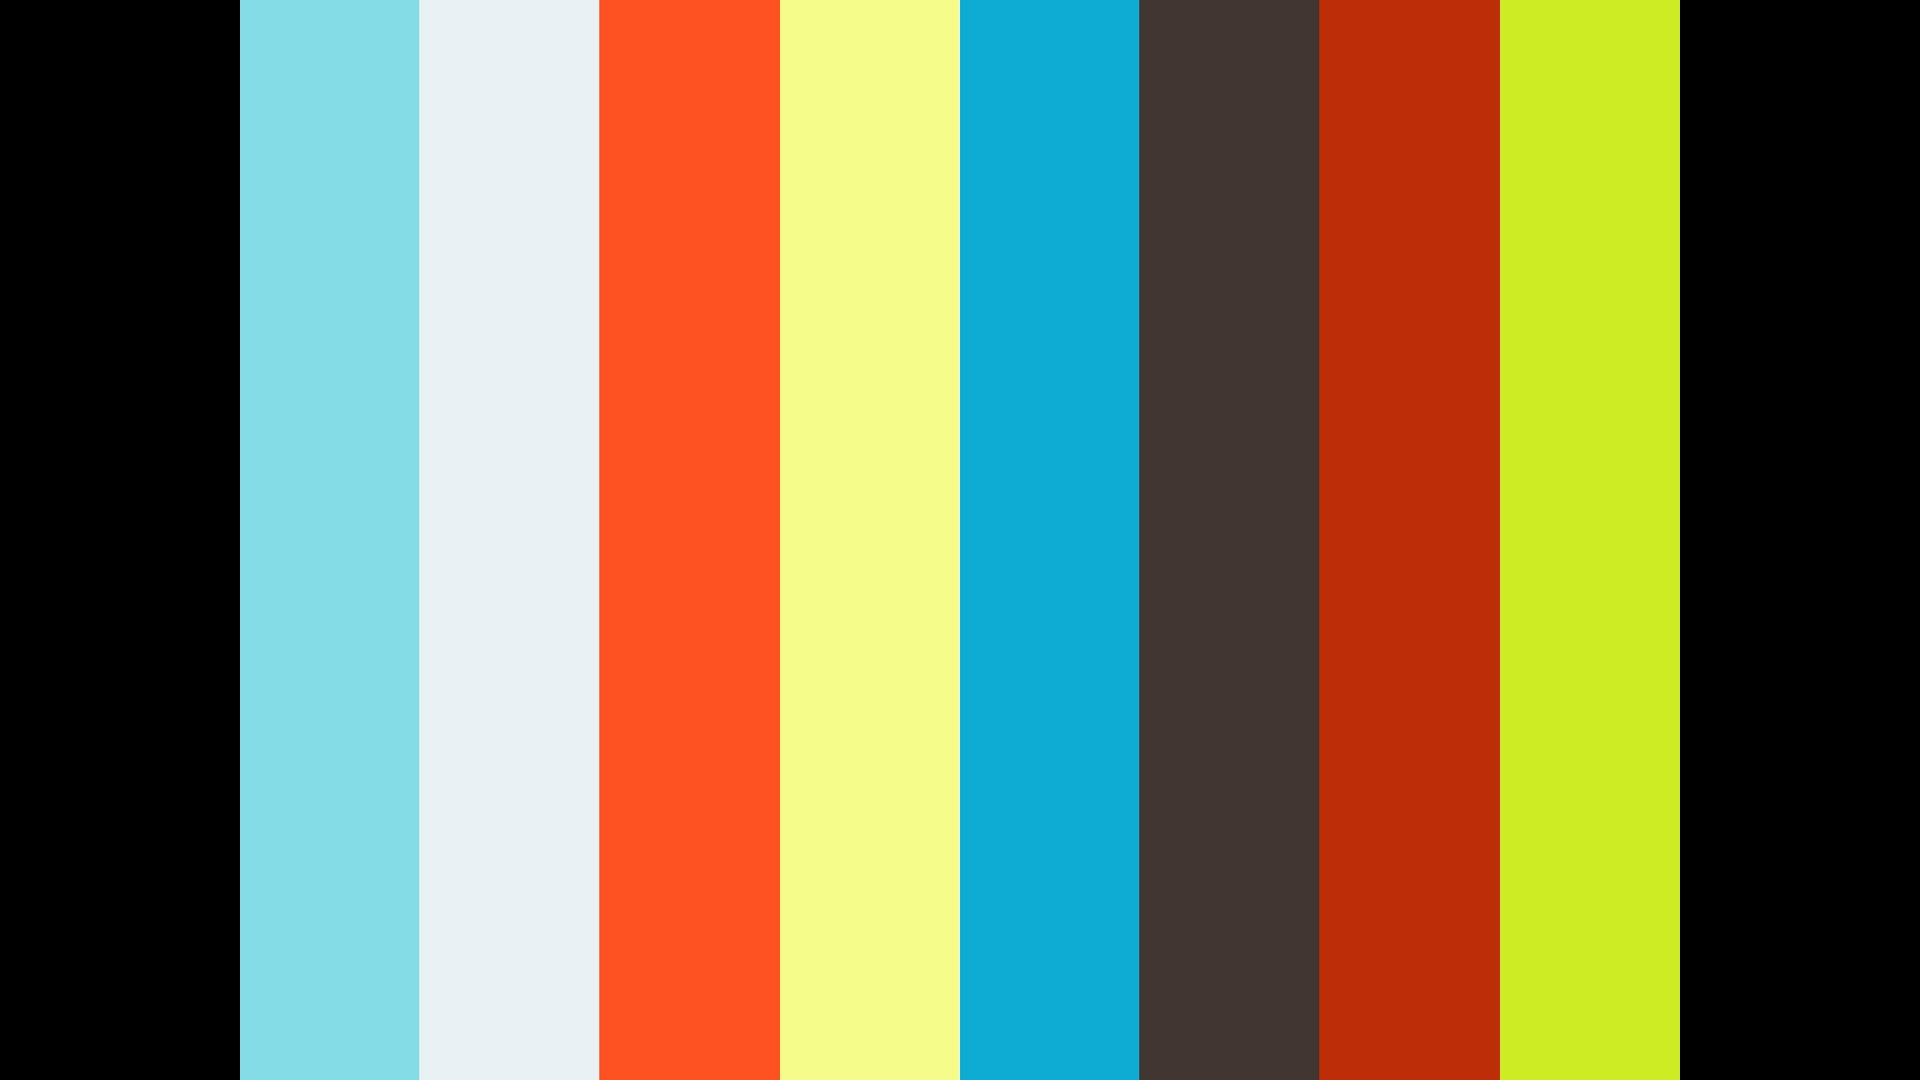 paragliding in korea; West German Yeti4_20.11.15_1